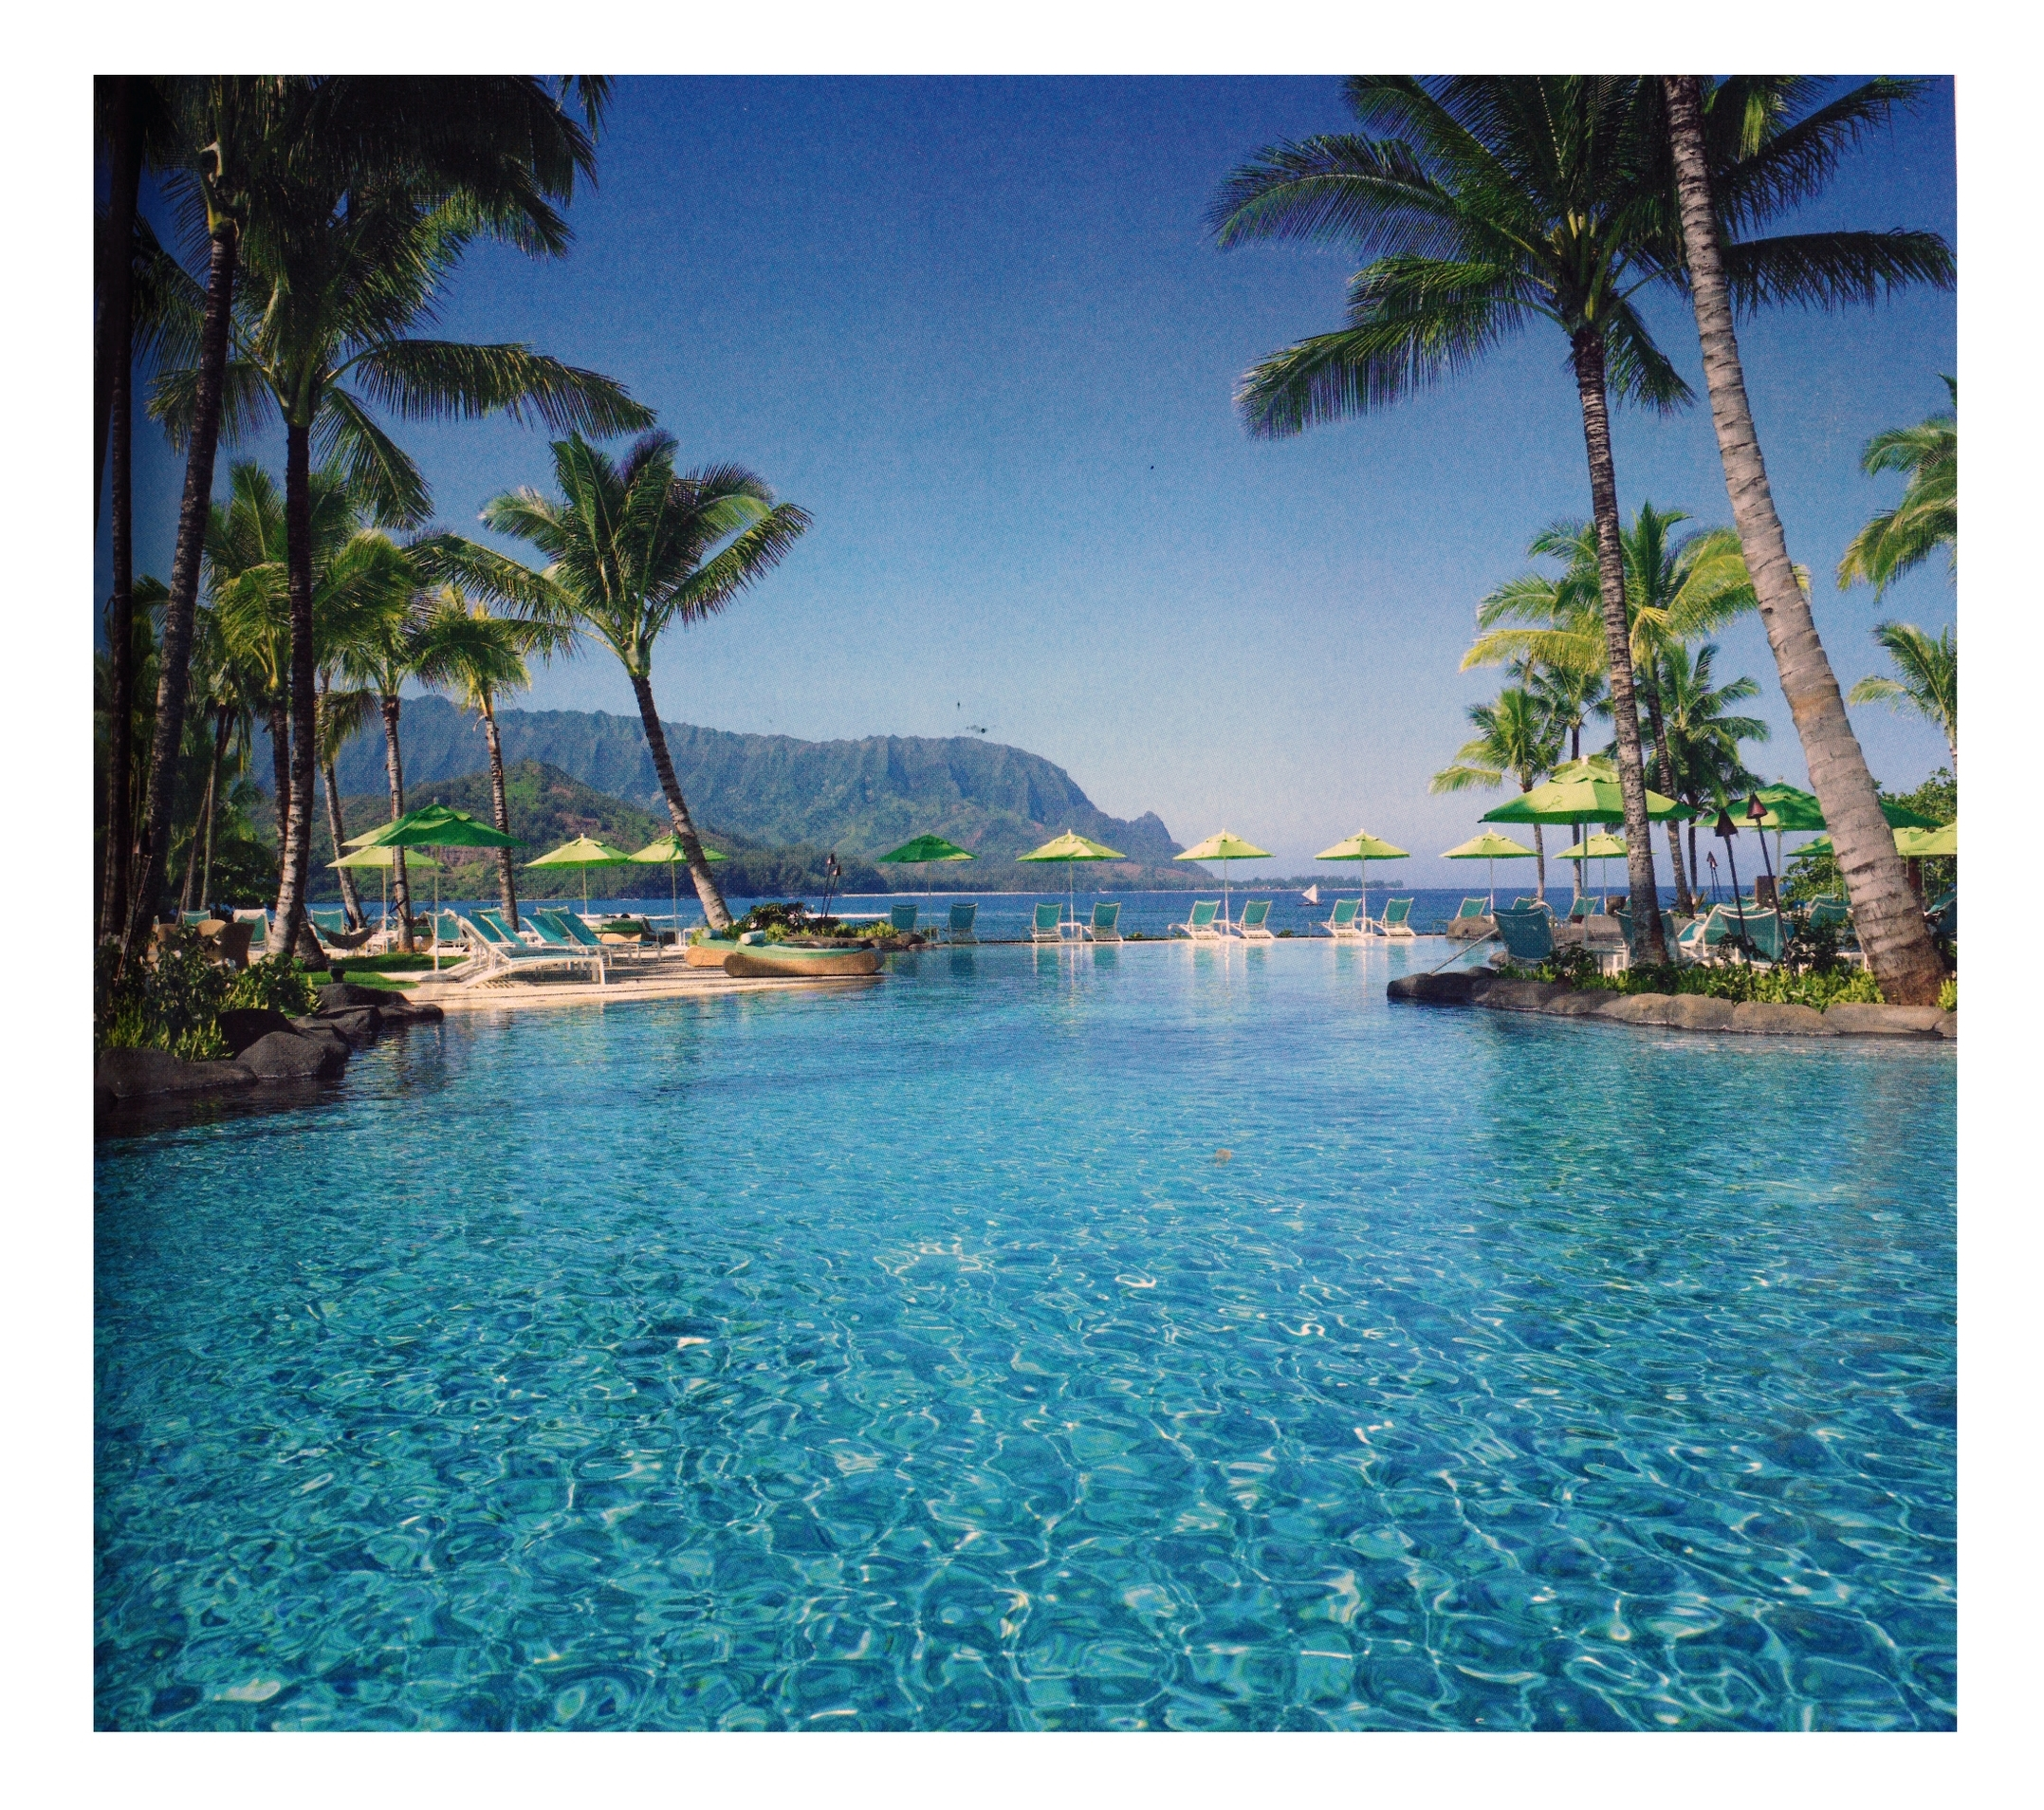 St. Regis, Princeville, Kaua'i, Hawaii    Image: American Express Fine Hotels & Resorts Travel Guide, 2014